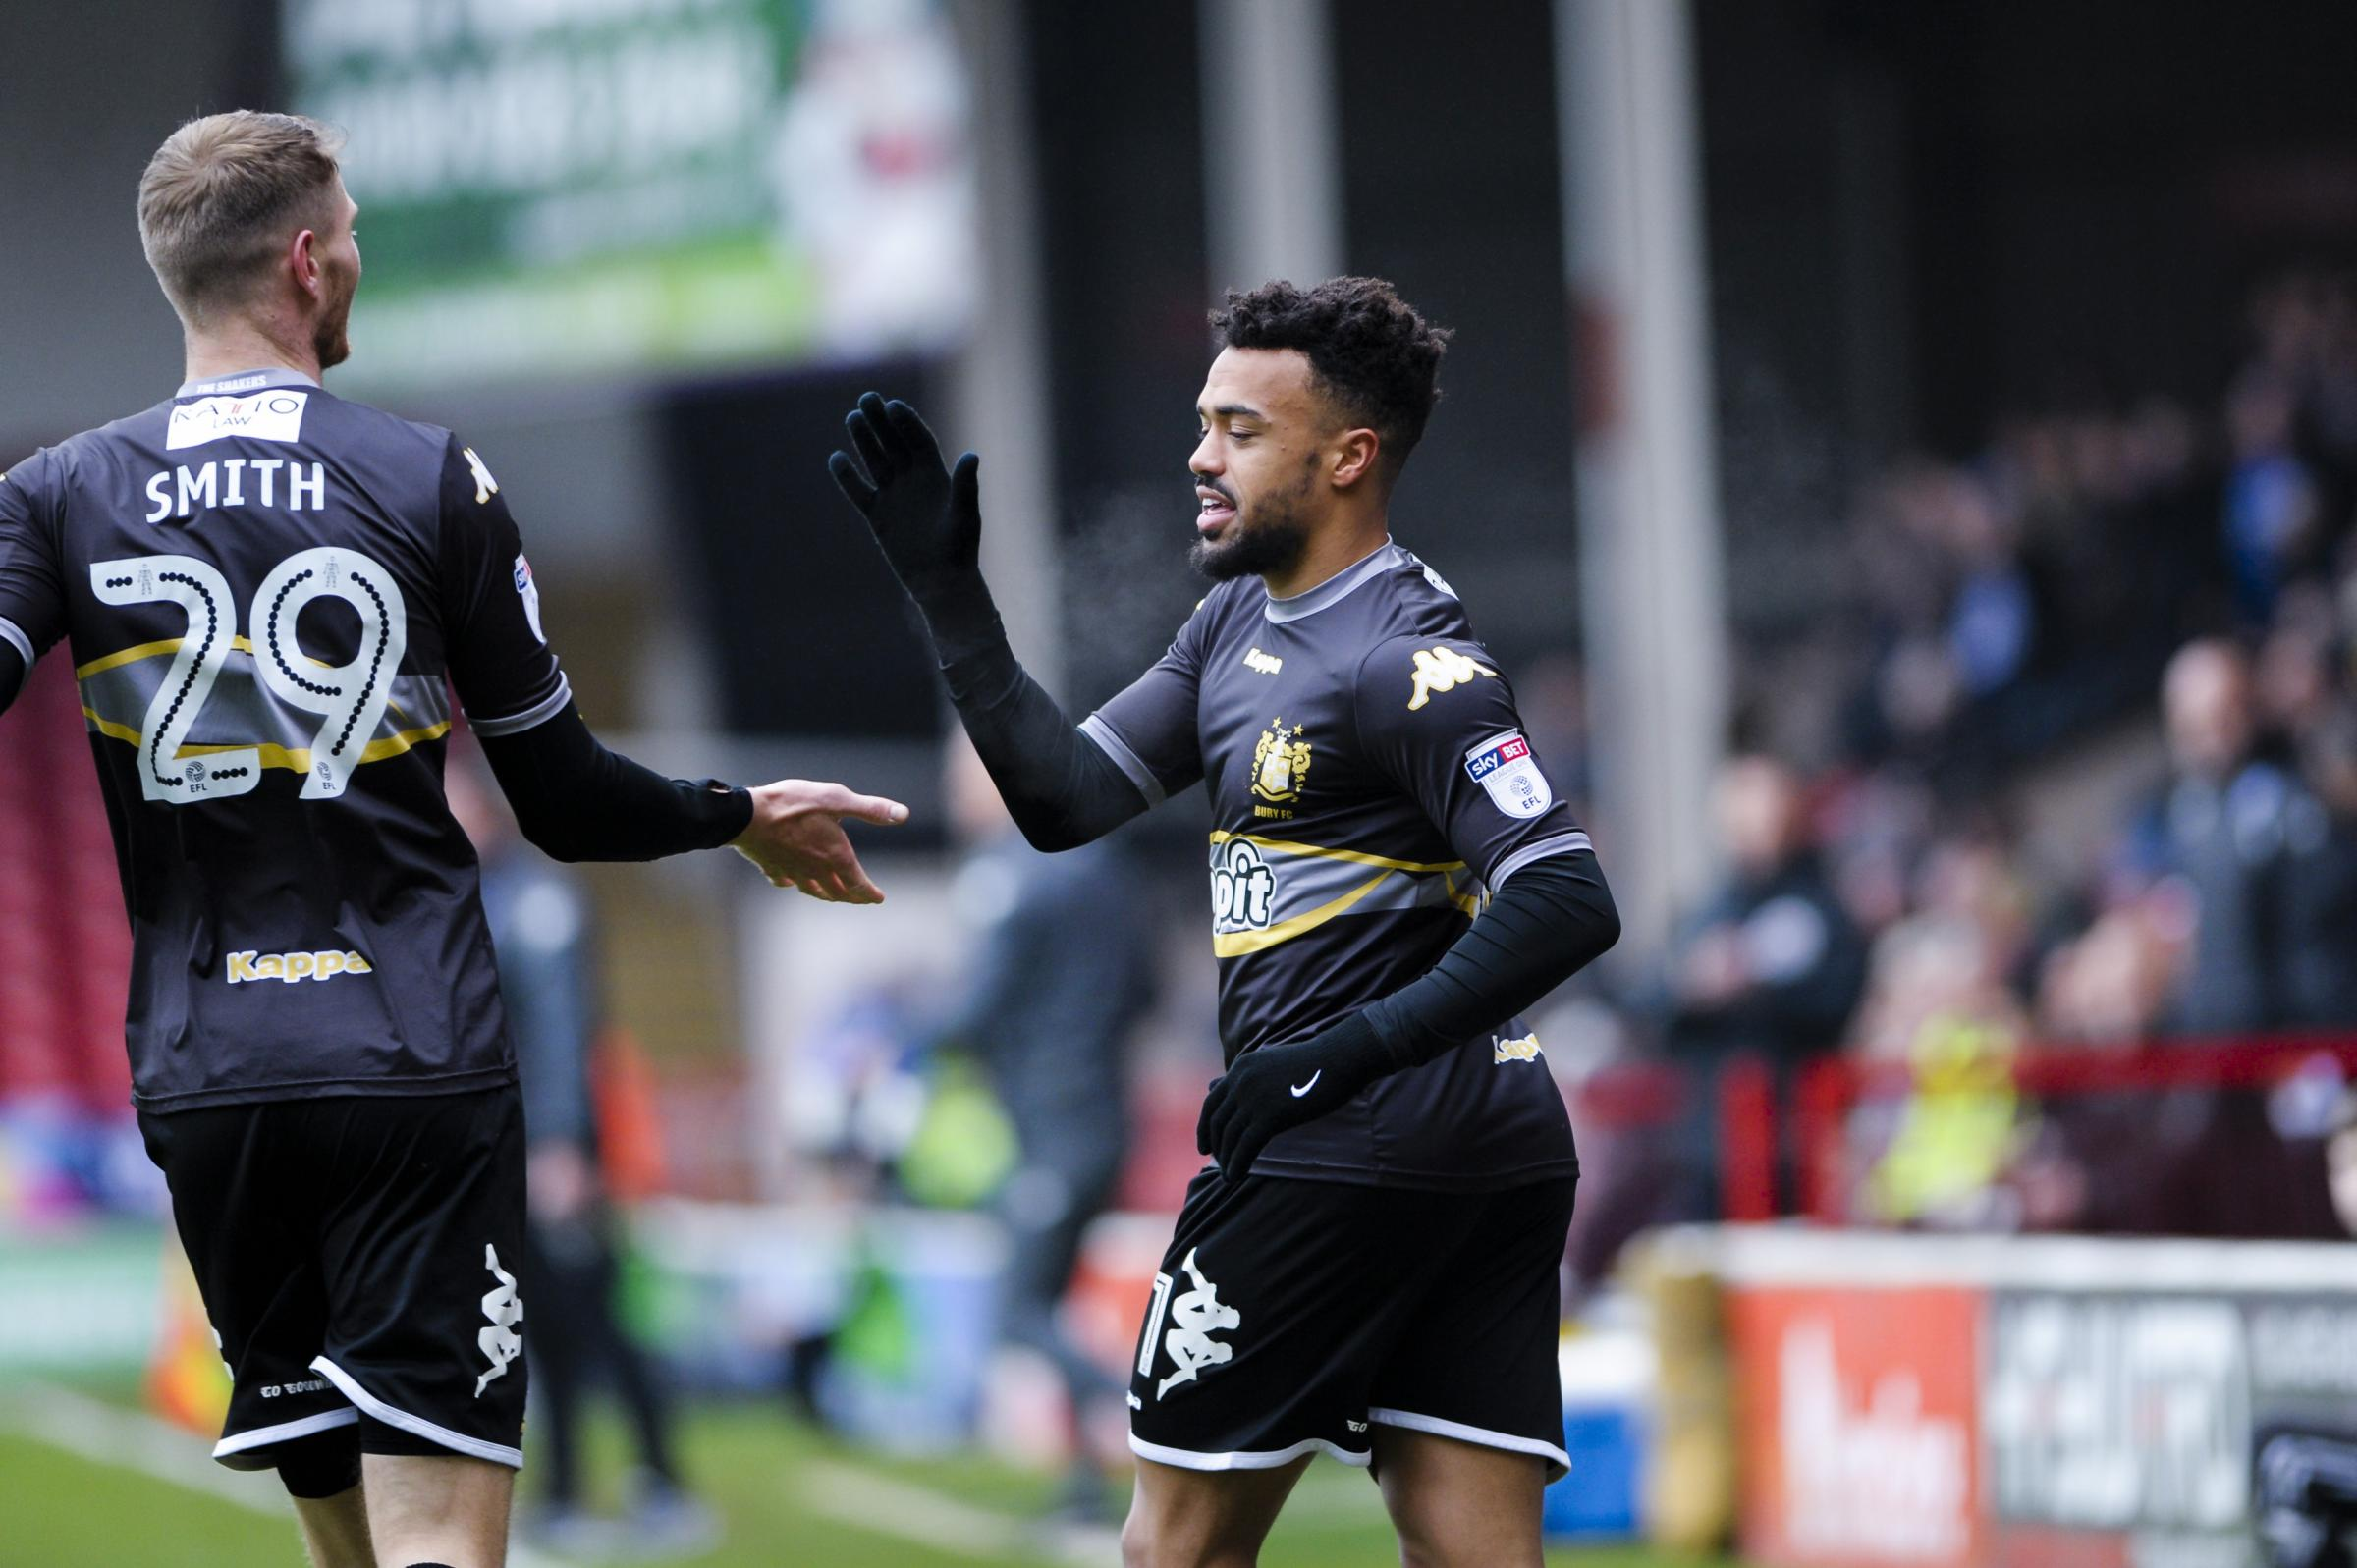 HOWDY PARTNER: Nicky Ajose celebrates with strike partner Michael Smith after opening the scoring at Walsall